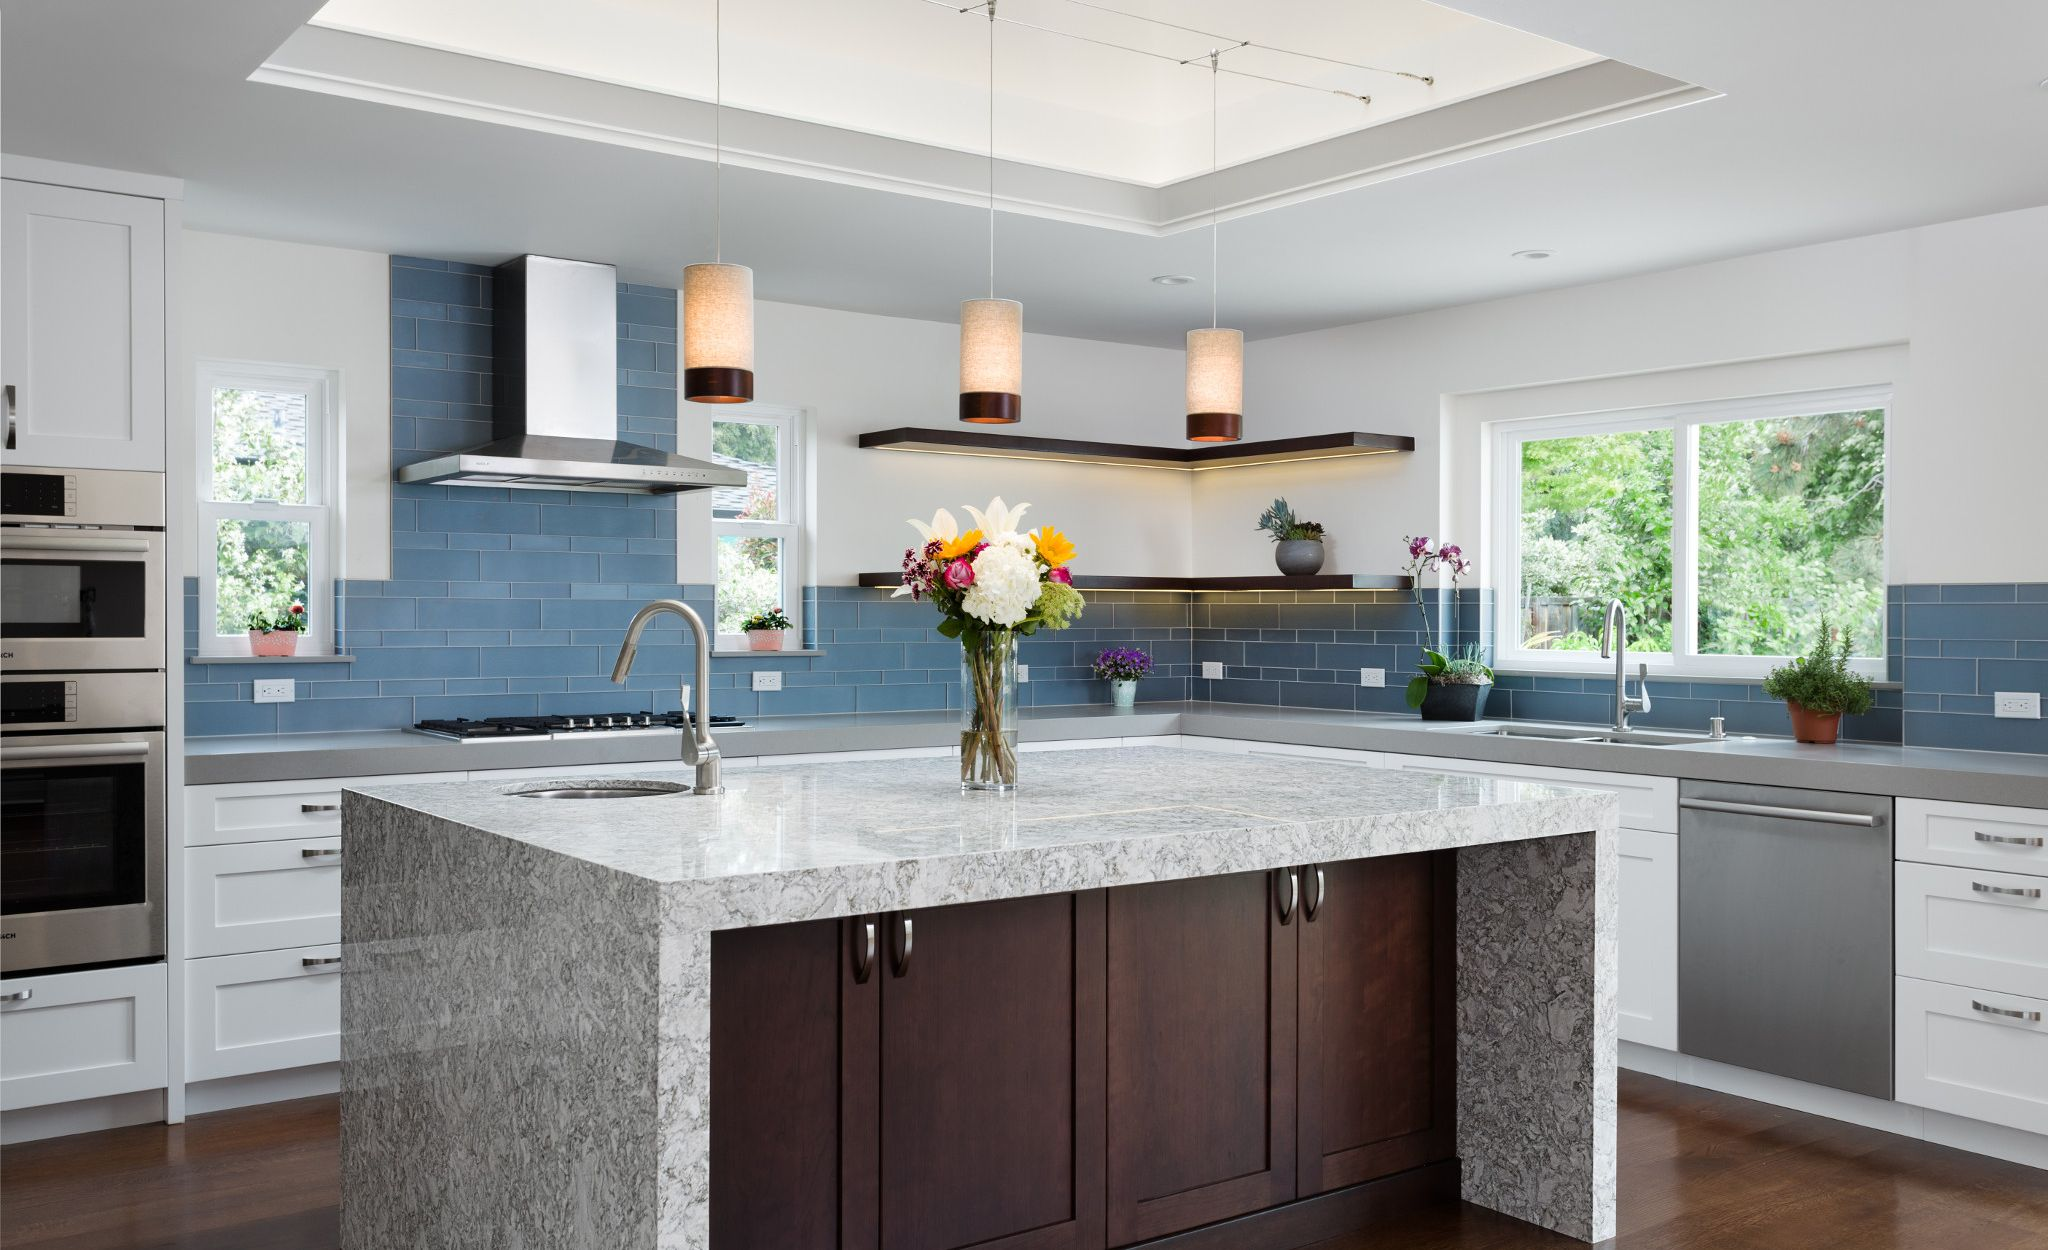 Transitional kitchen with Cambria Berwyn countertops.